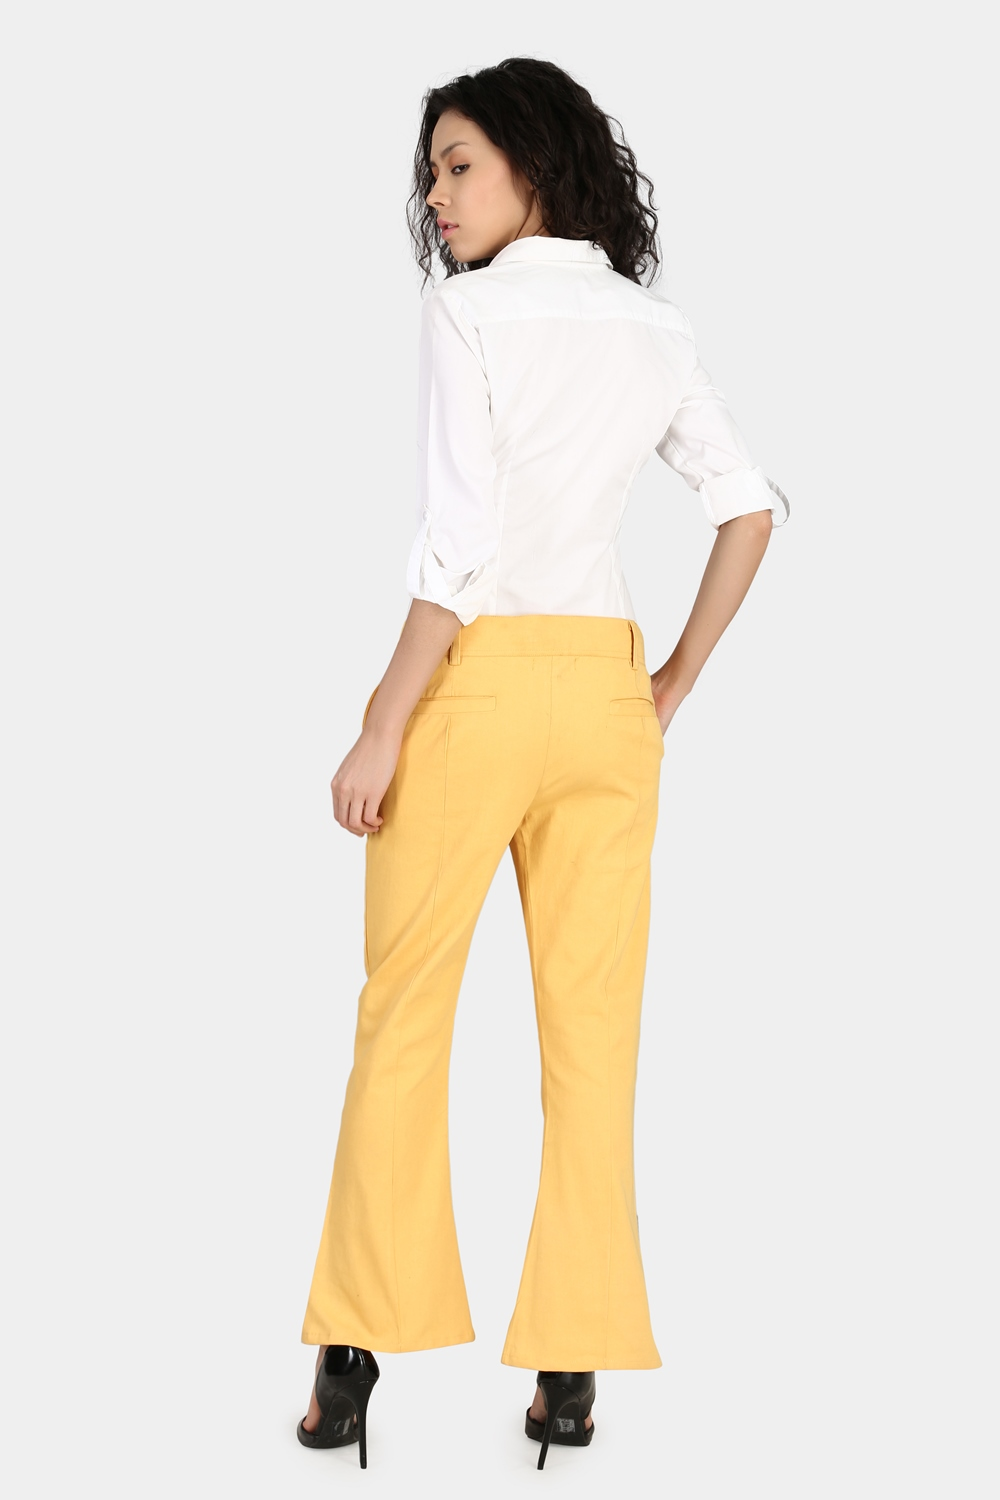 Bell Bottom Trouser -2